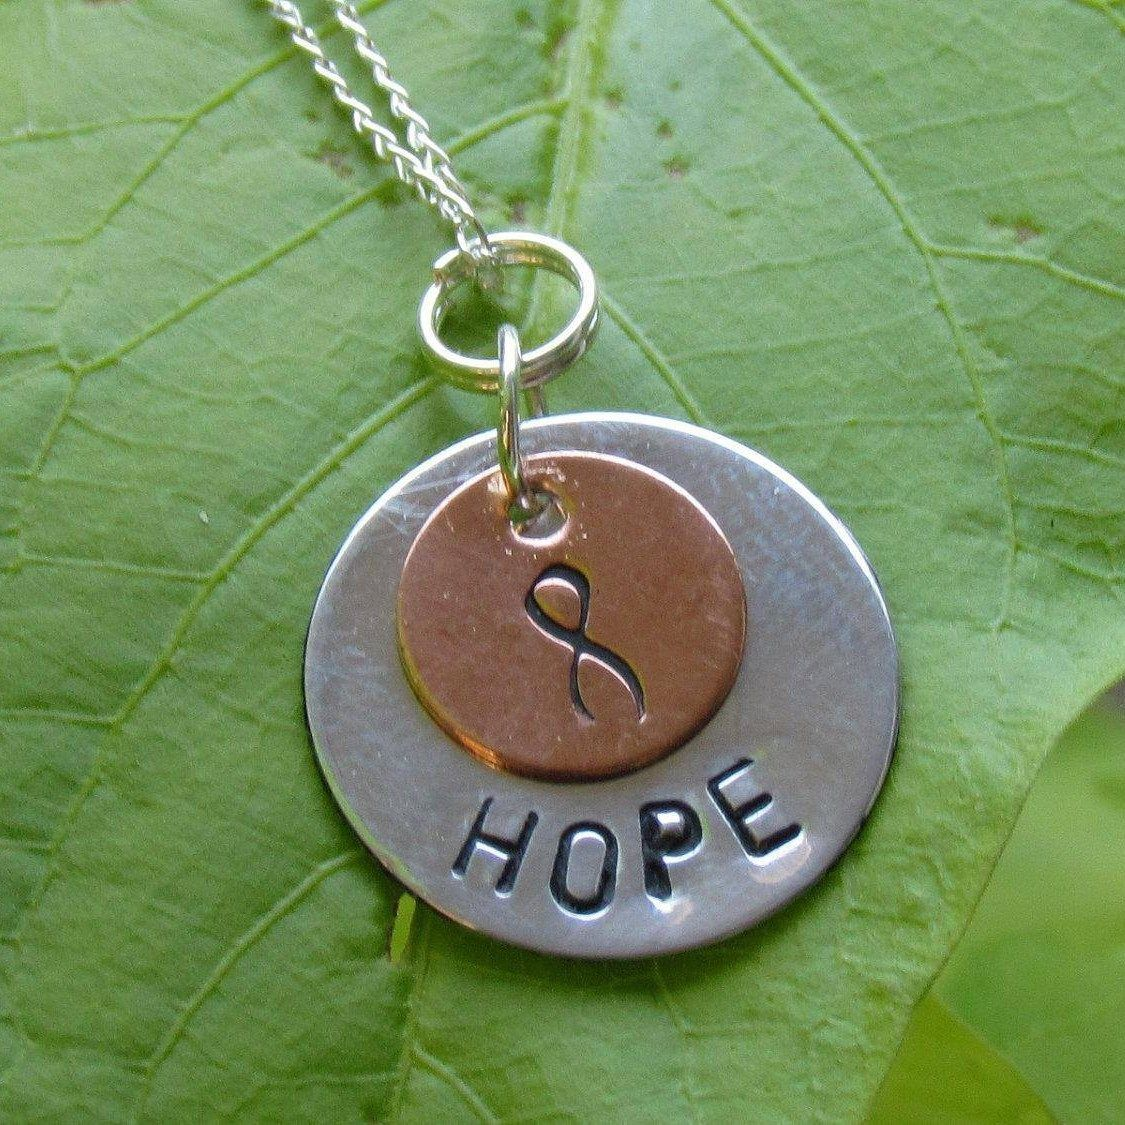 Pin by edna bidle on jewelry pinterest cancer symbol ehlers danlos syndrome hand stamped jewelry sterling silver chains cancer awareness nursing symbols vascular ehlers danlos syndrome buycottarizona